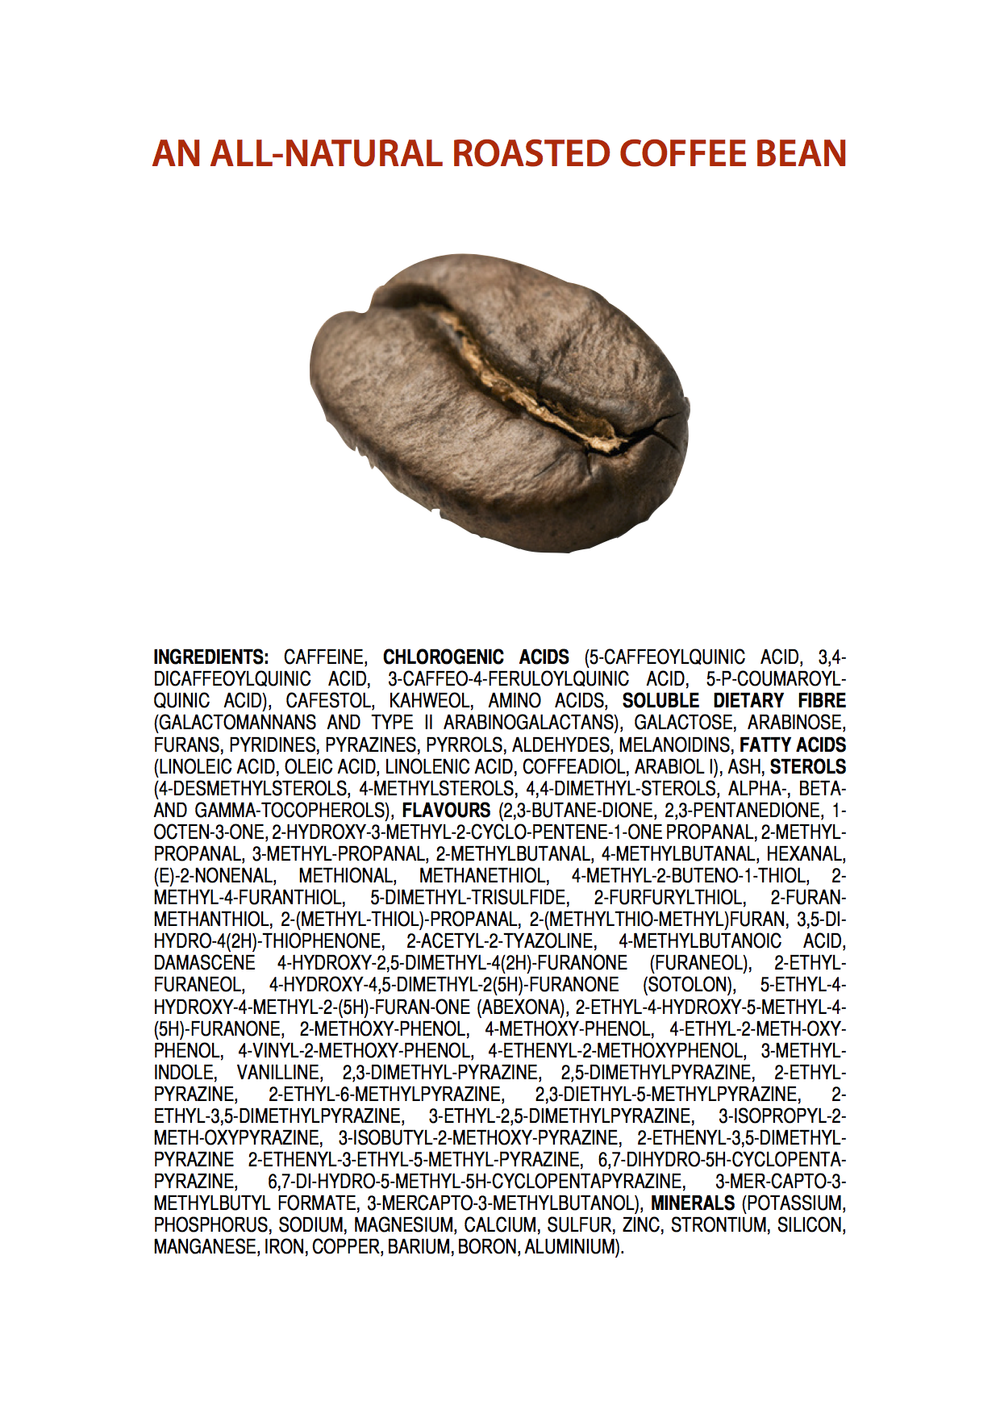 Chemicals in All-Natural Roasted Coffee Bean